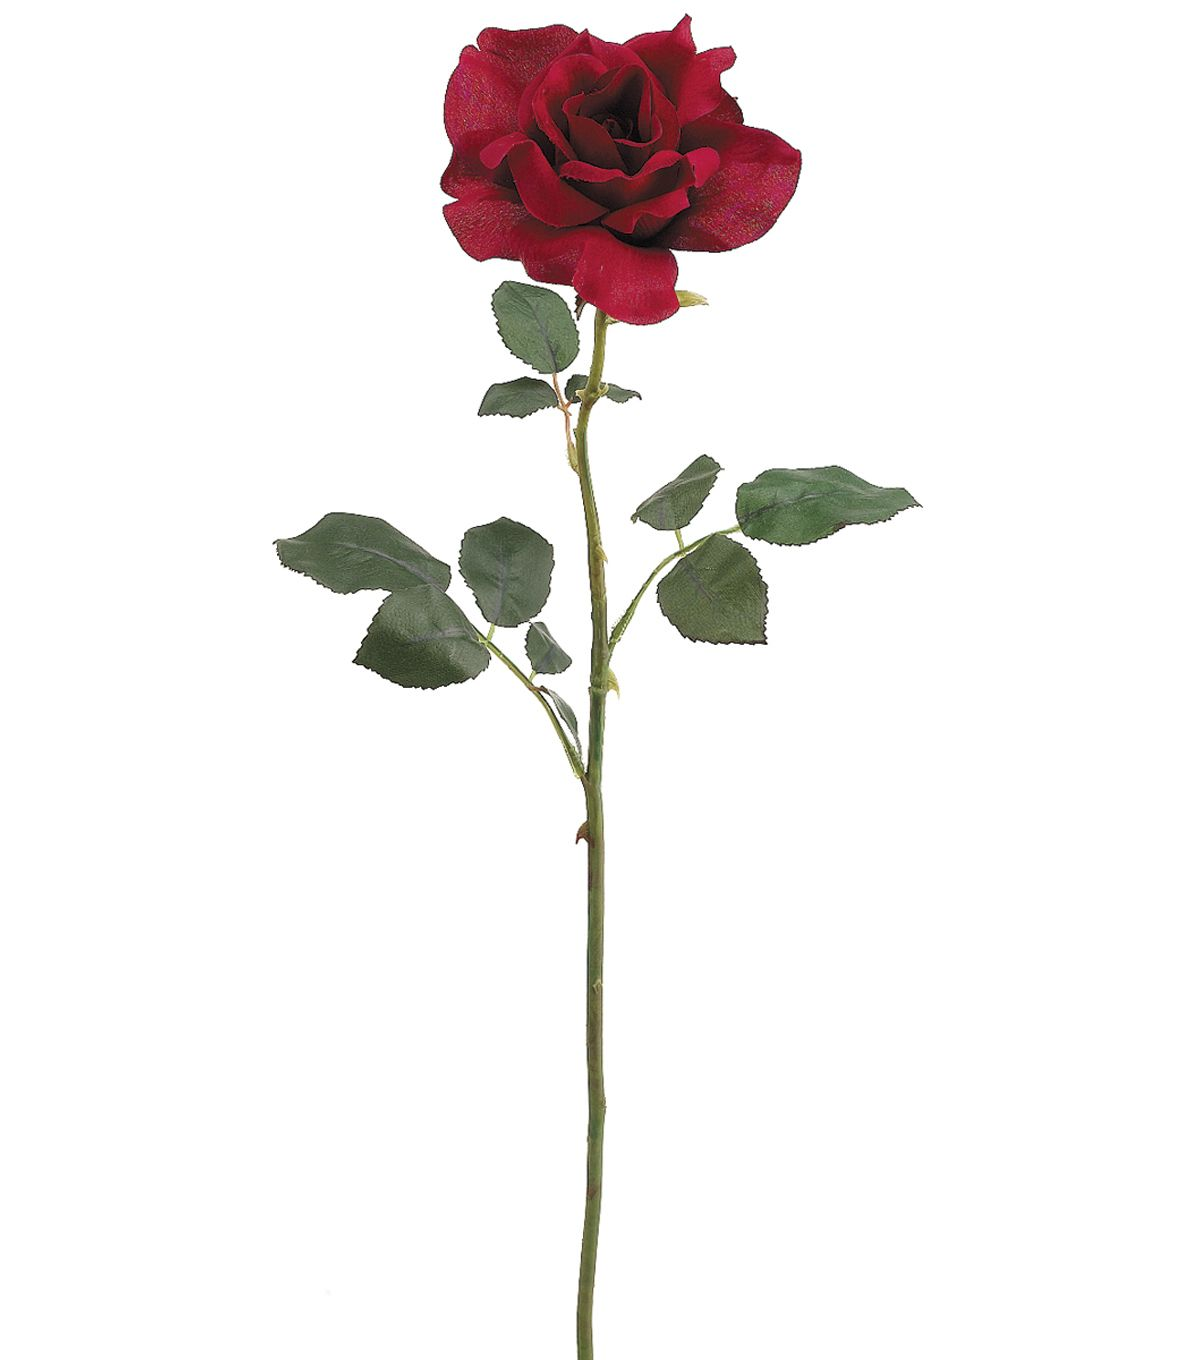 26 39 39 american beauty rose spray red26 39 39 american beauty for Rose with stem tattoo designs